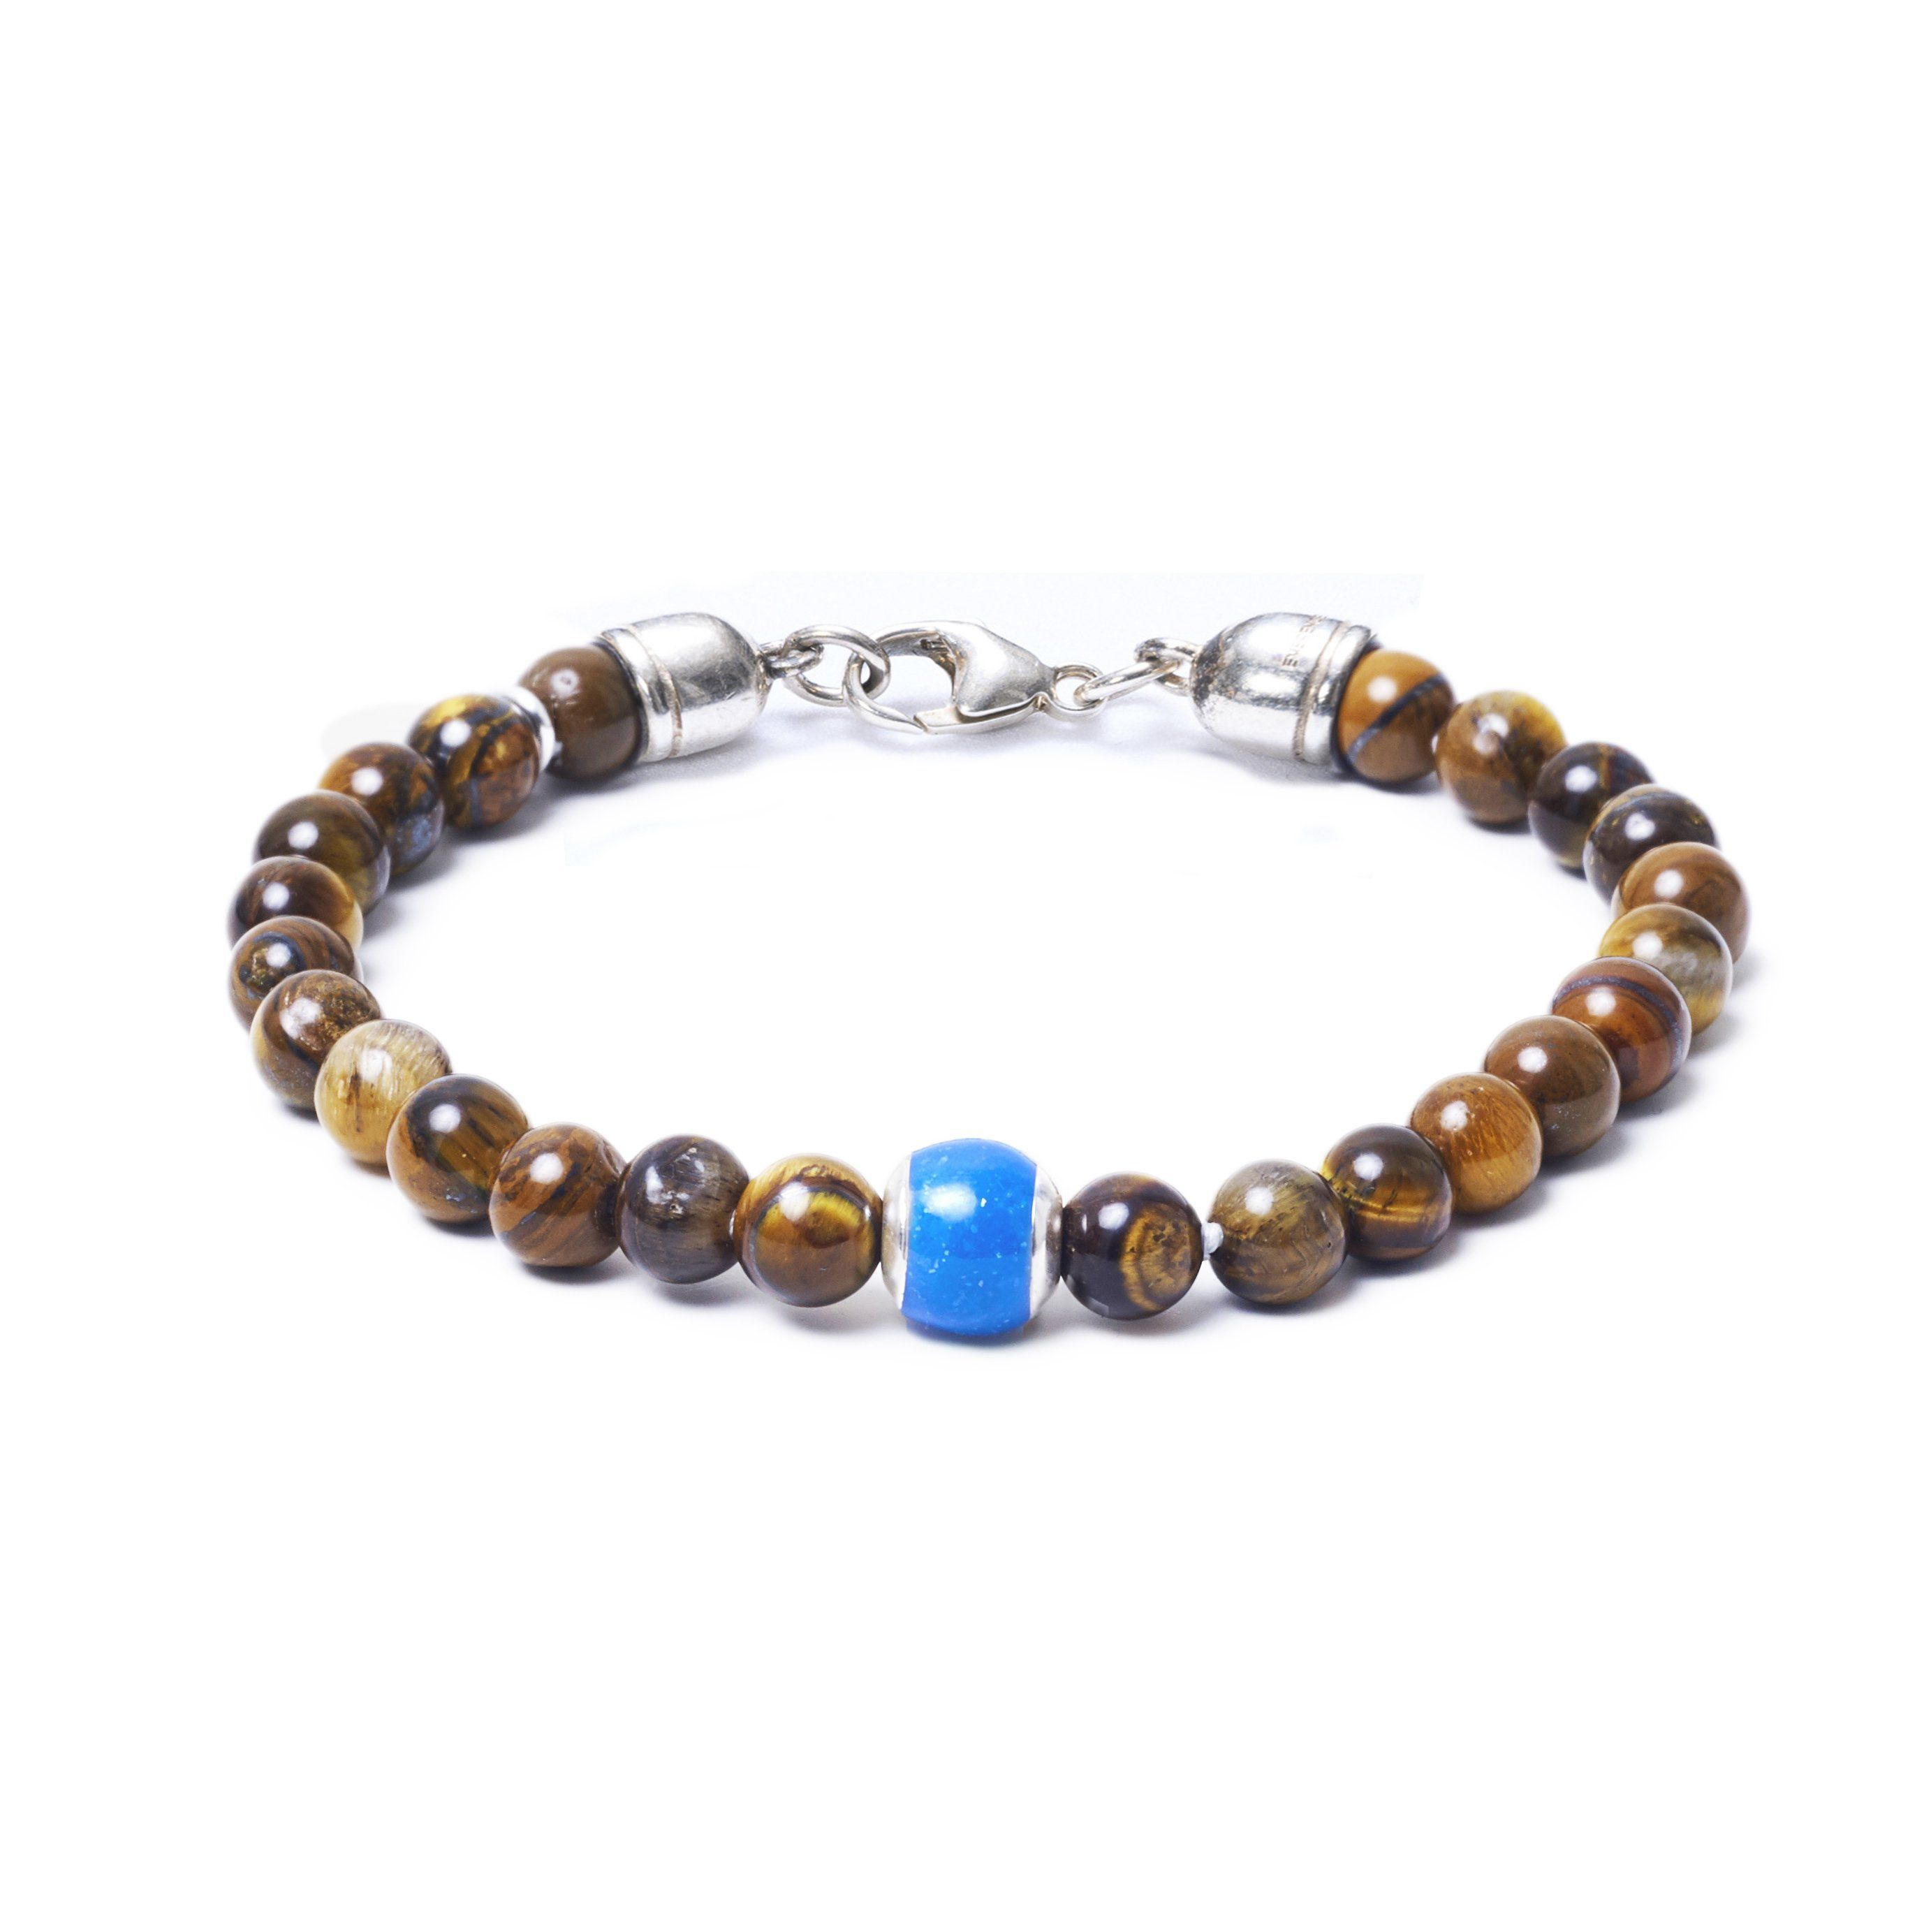 Tiger Eye, One Everence Bead everence.life